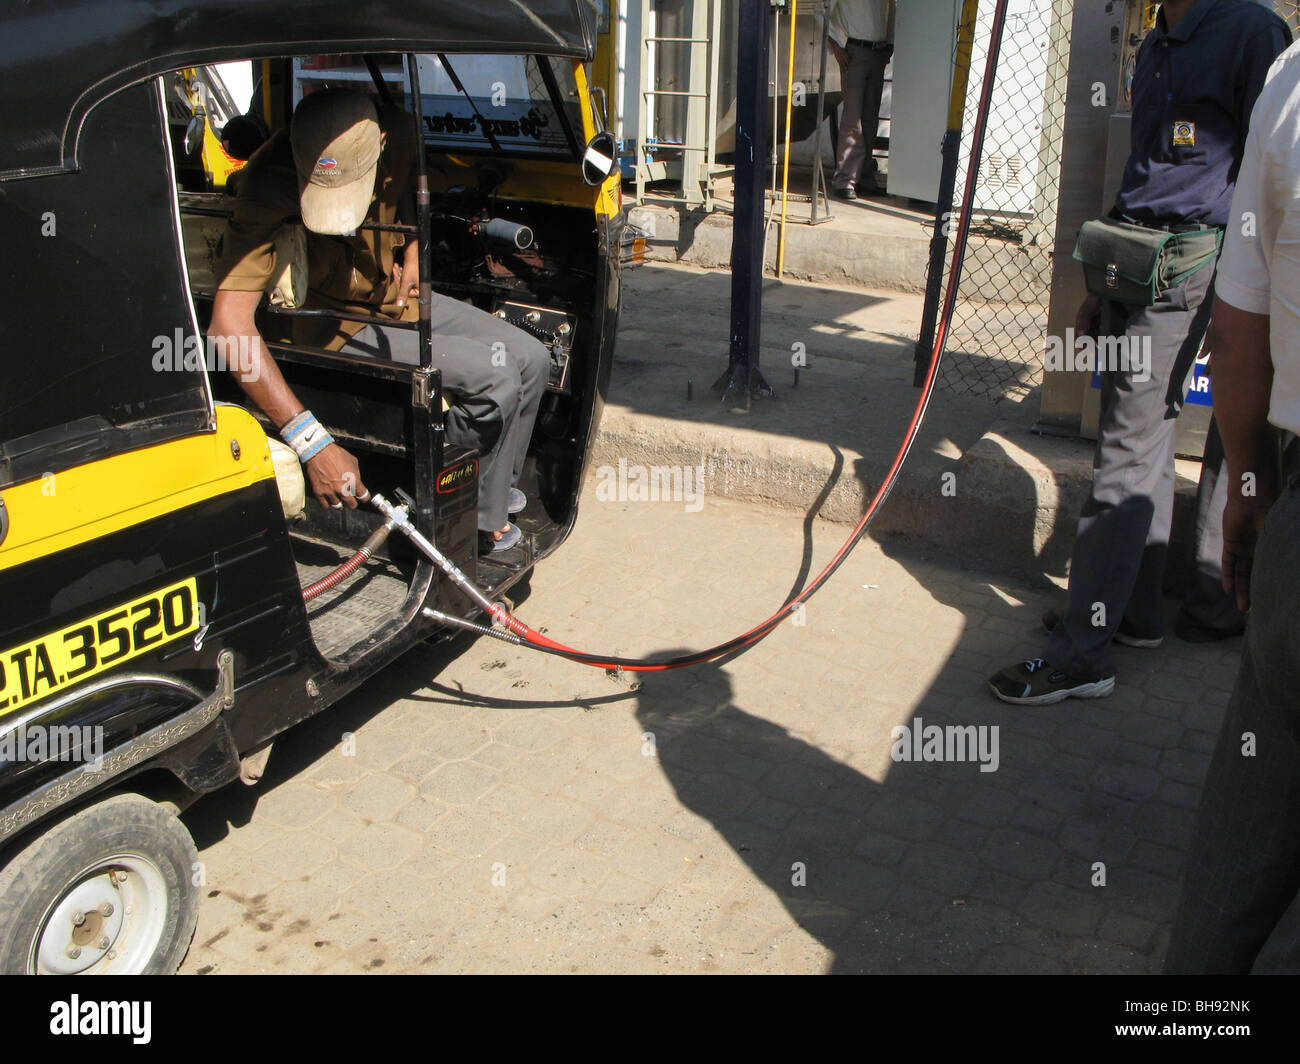 INDIA Highly polluting auto-rickshaw being refuelled , Mumbai Photo © Julio Etchart - Stock Image